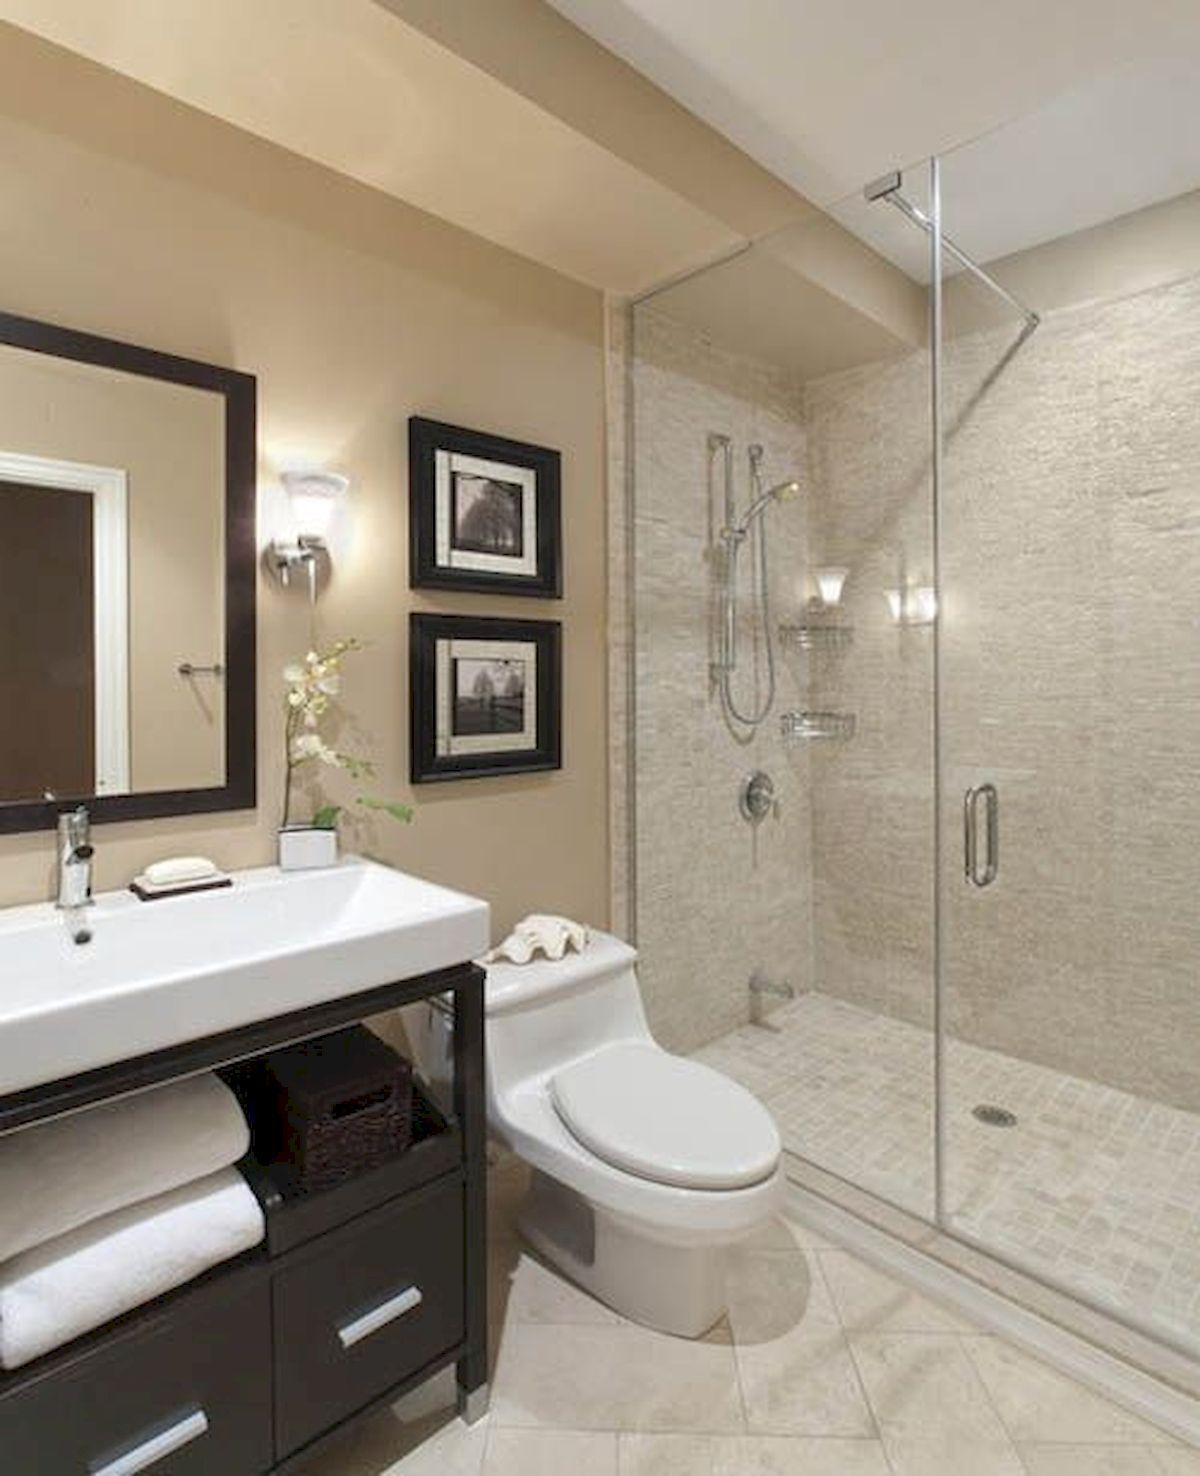 60 Elegant Small Master Bathroom Remodel Ideas 28 Transitional Bathroom Design Bathroom Remodel Master Bathroom Design Small